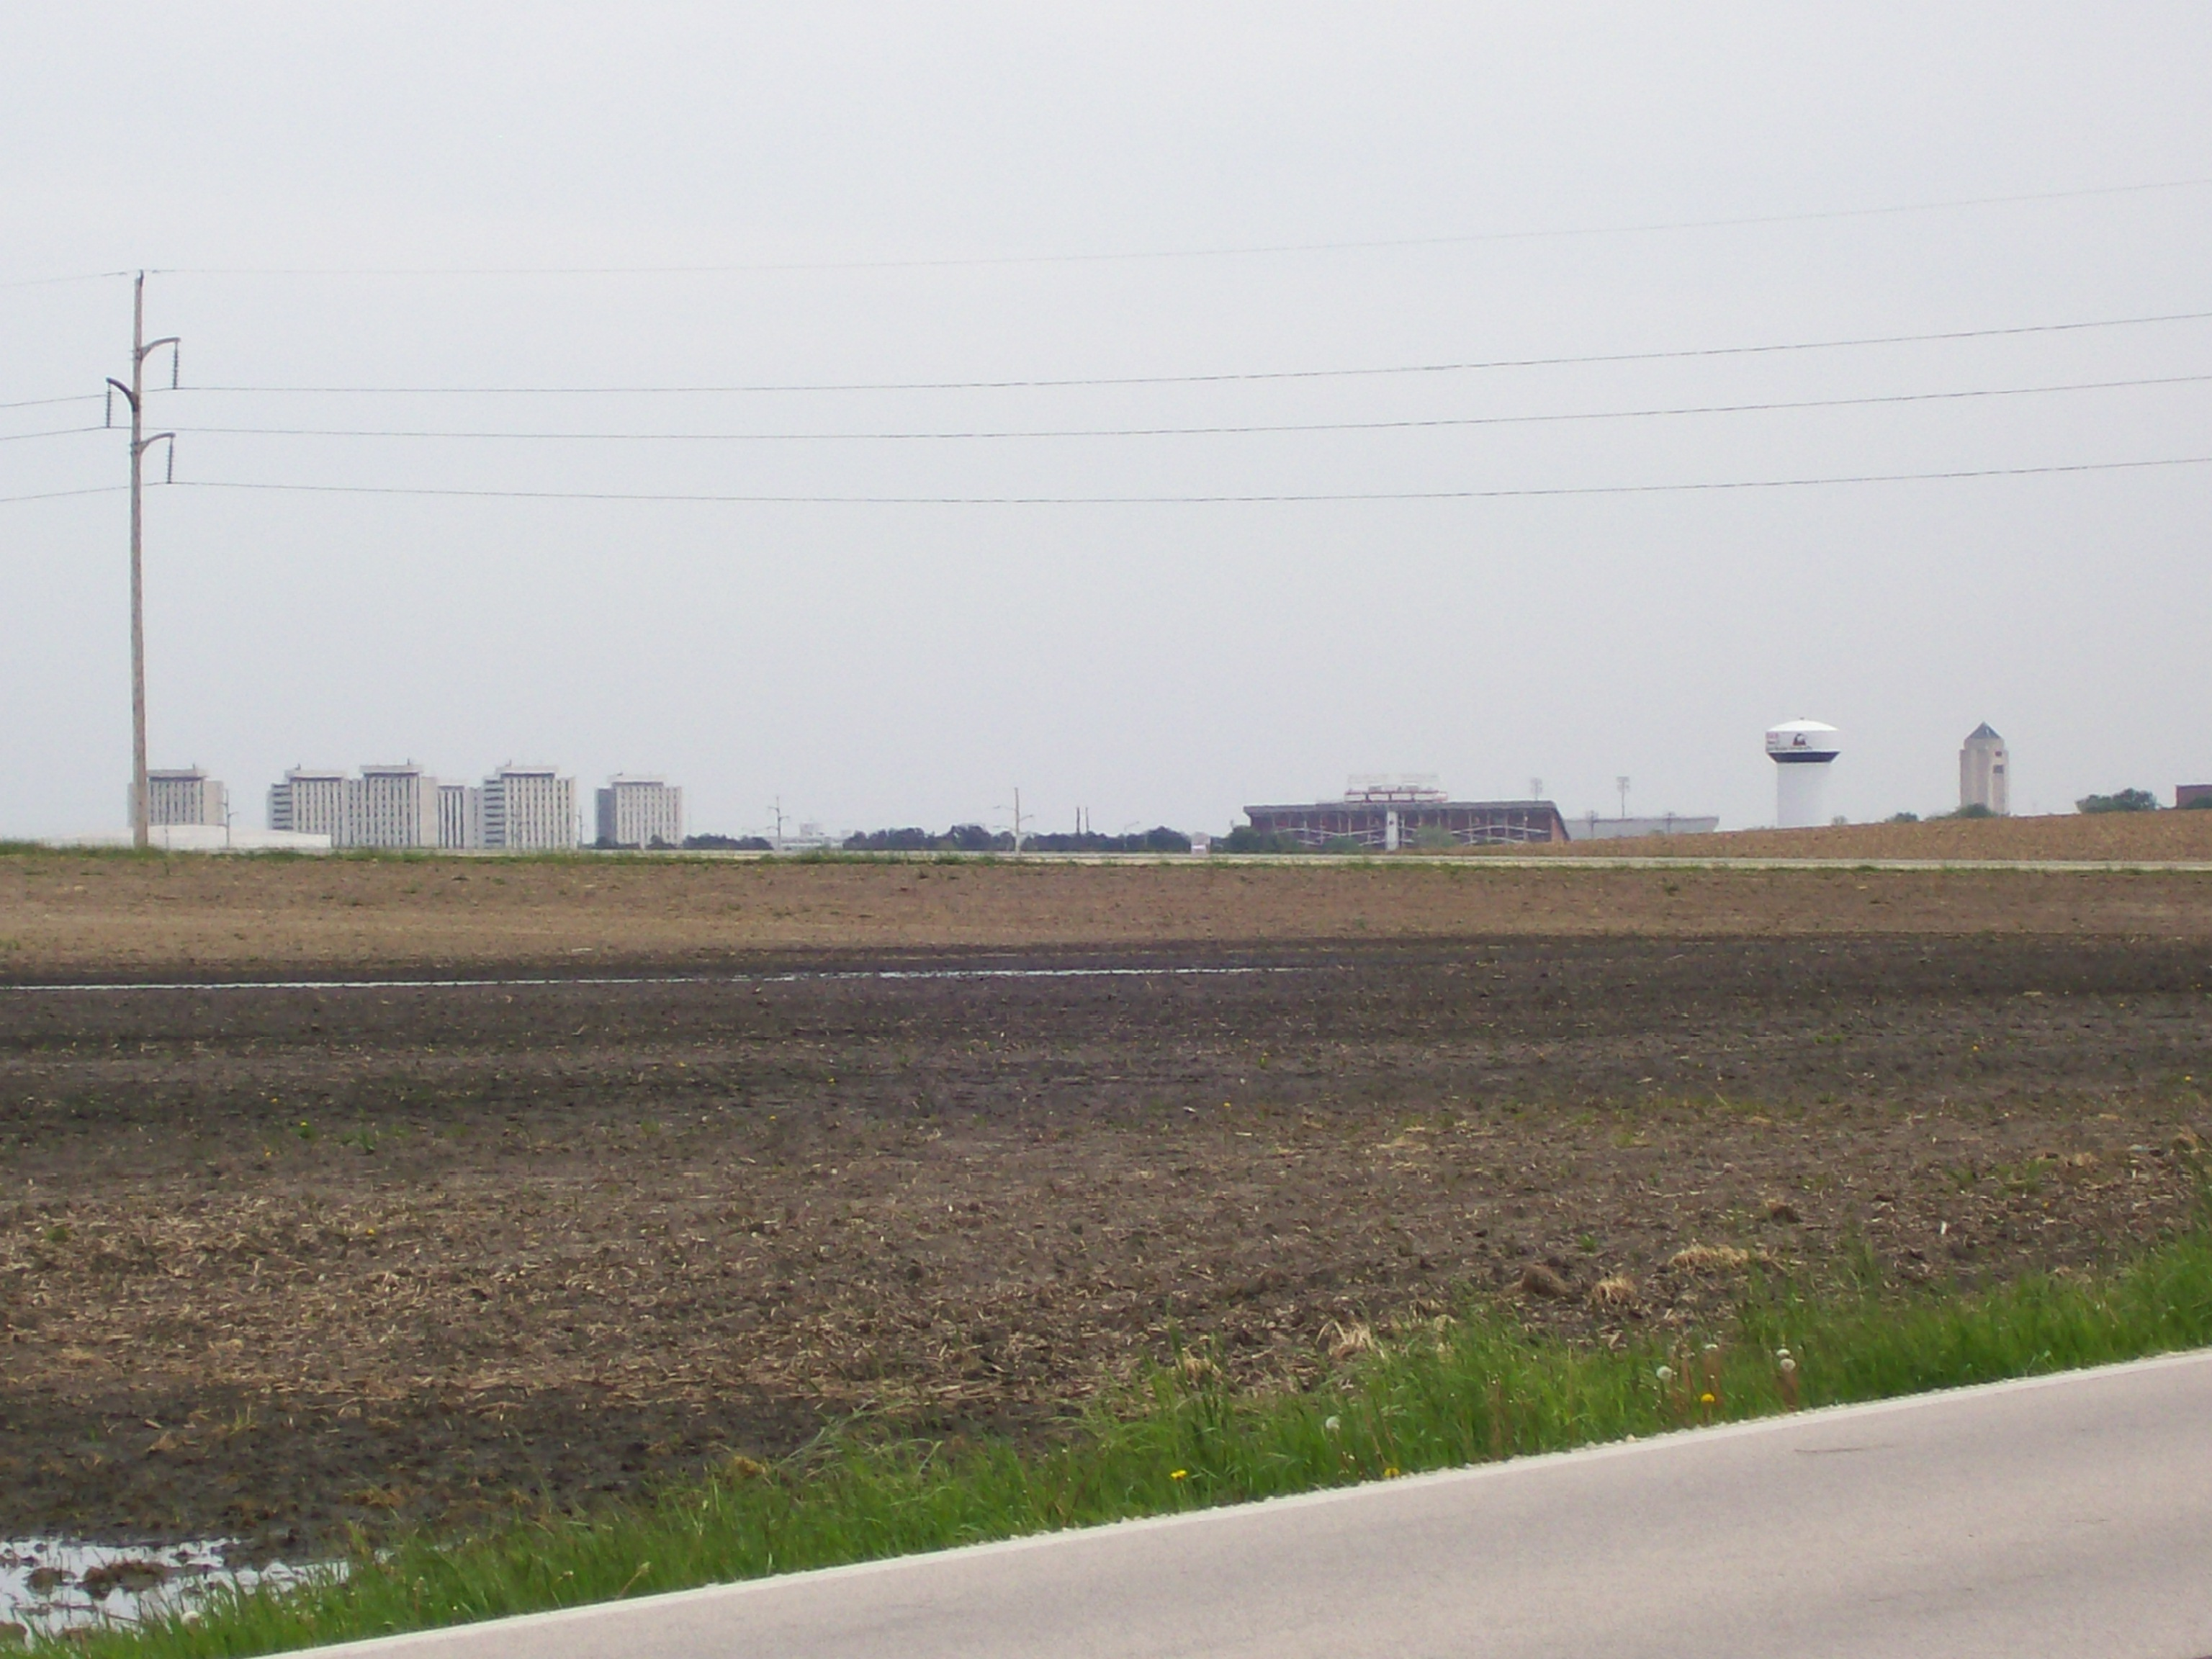 View of NIU from the Corn Fields